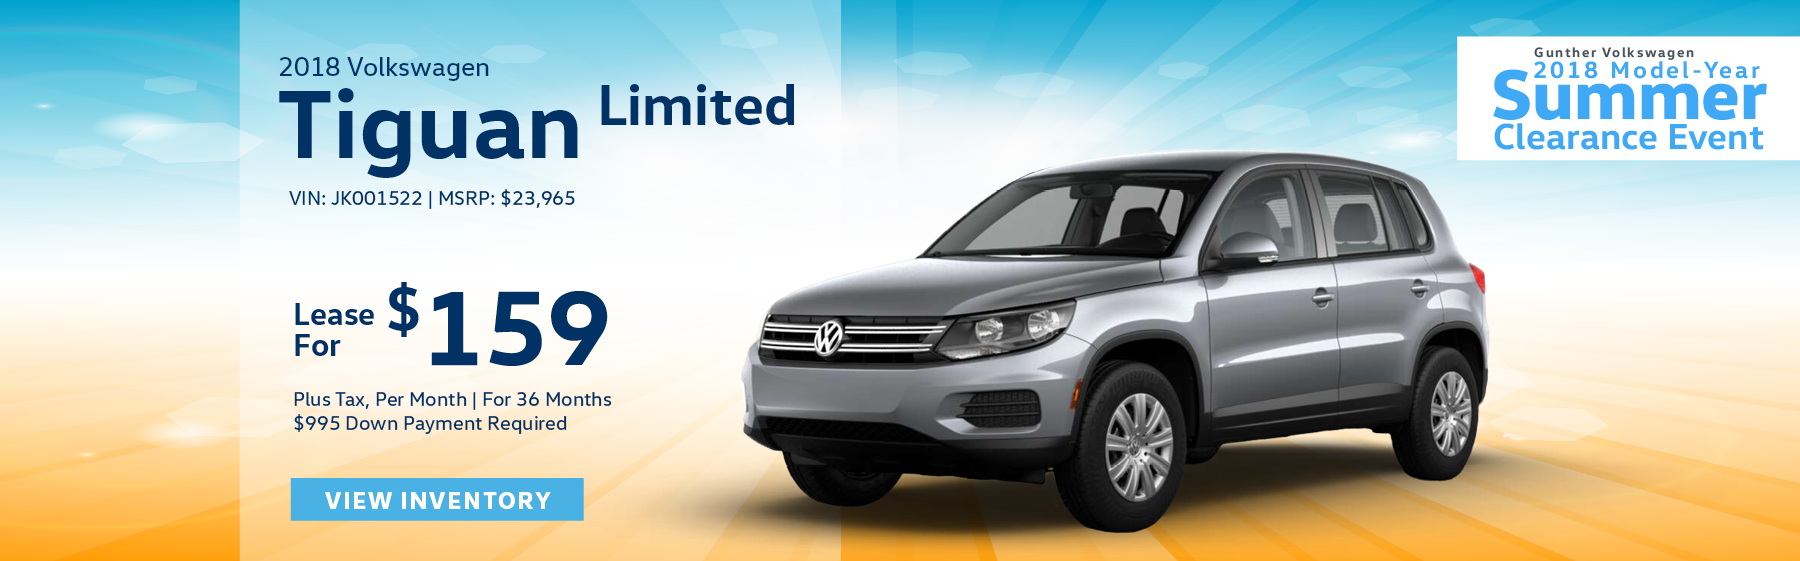 Lease the 2018 Tiguan Limited for $159 plus tax, for 36 months. $995 Down payment required.